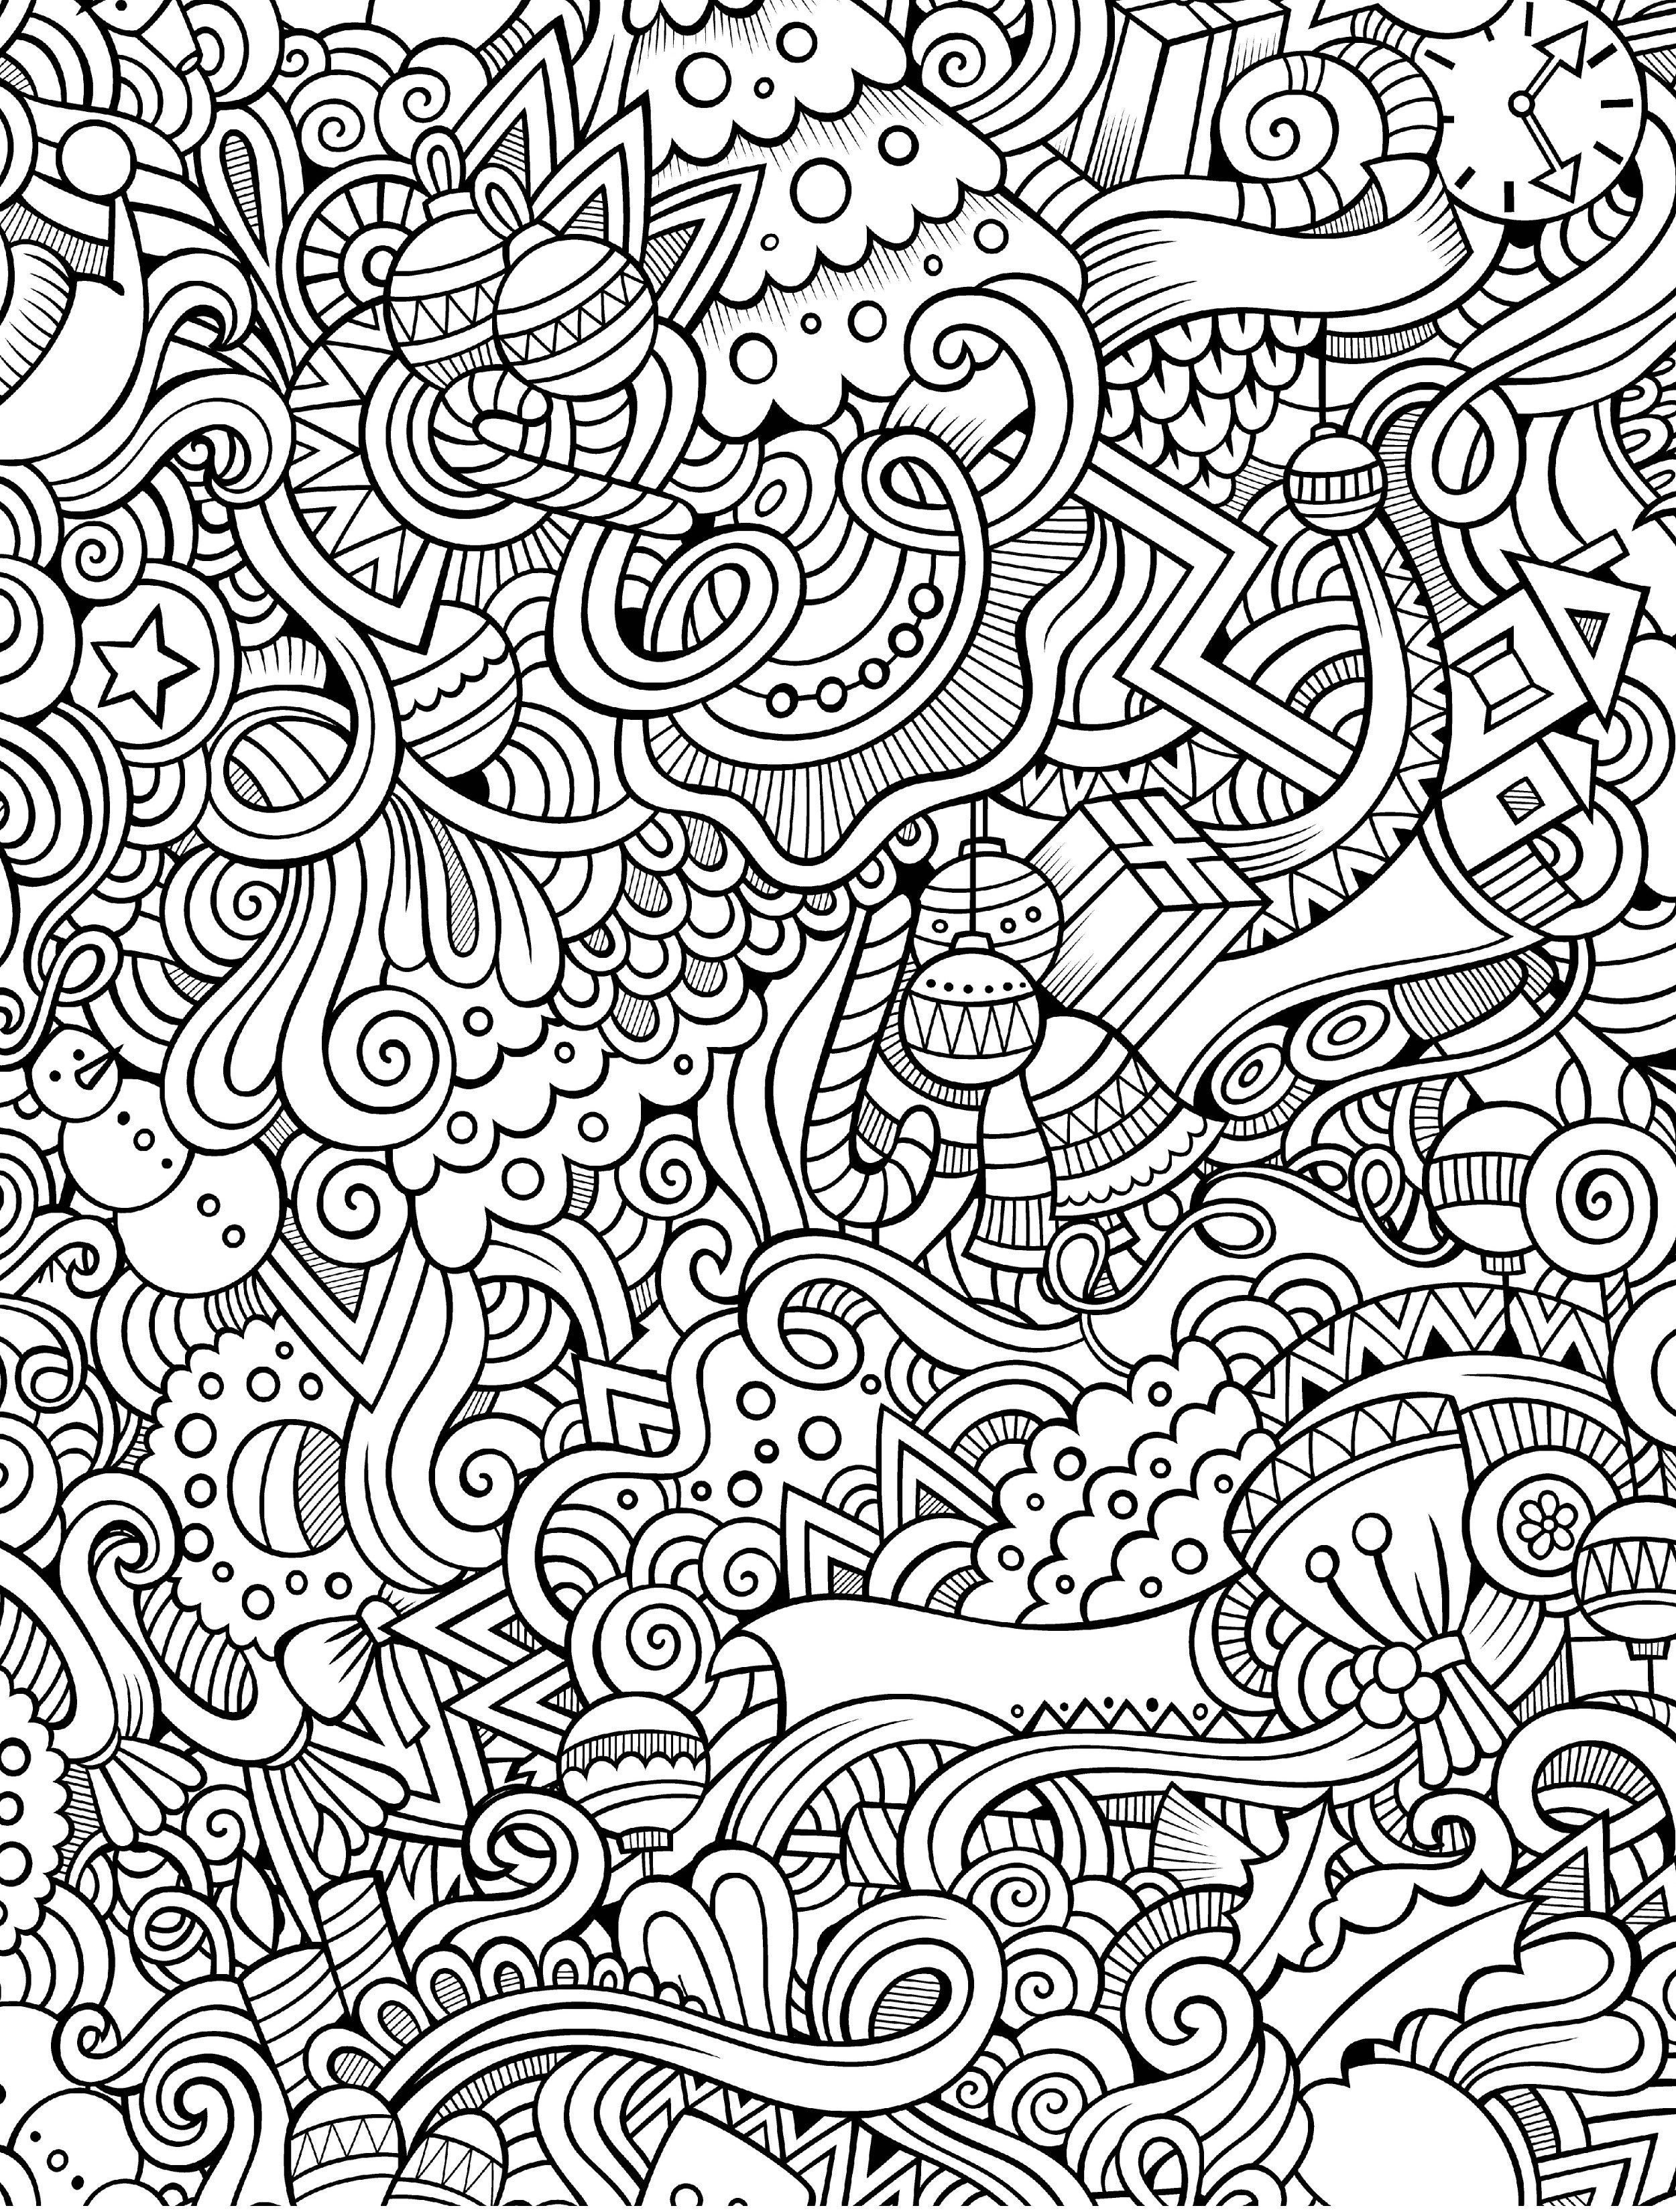 Very Detailed Christmas Coloring Pages With 10 Free Printable Holiday Adult